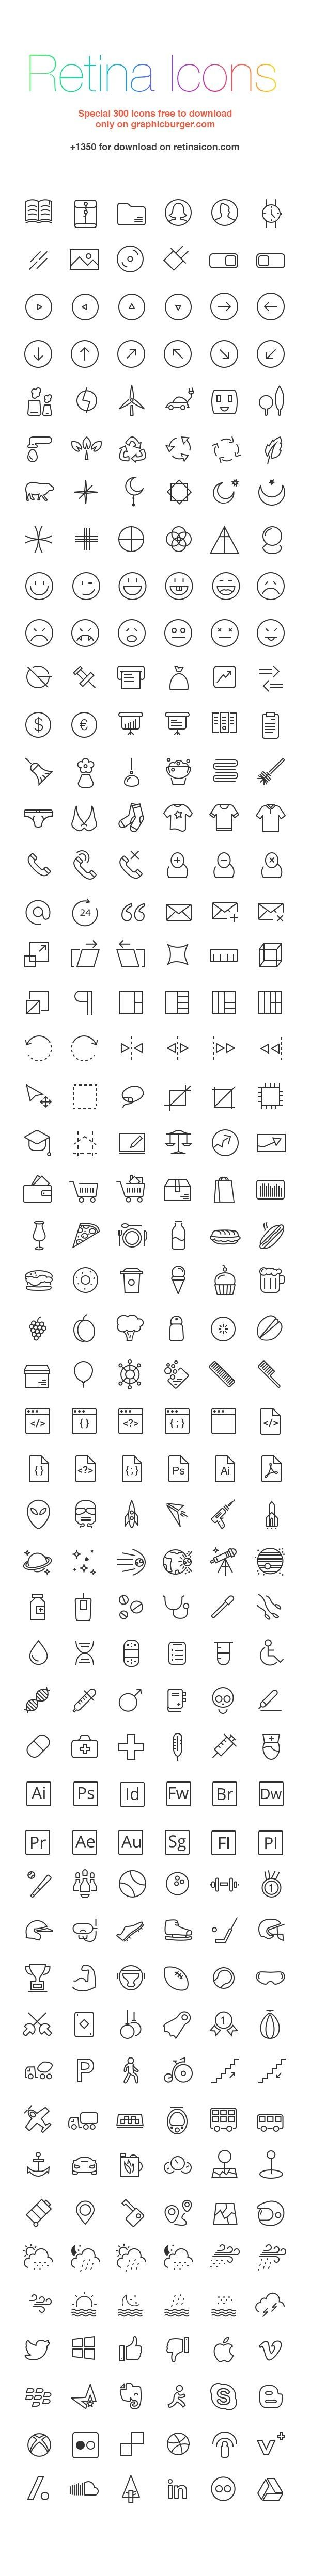 RetinaIcon: 300 Free Icons | GraphicBurger by Katybug